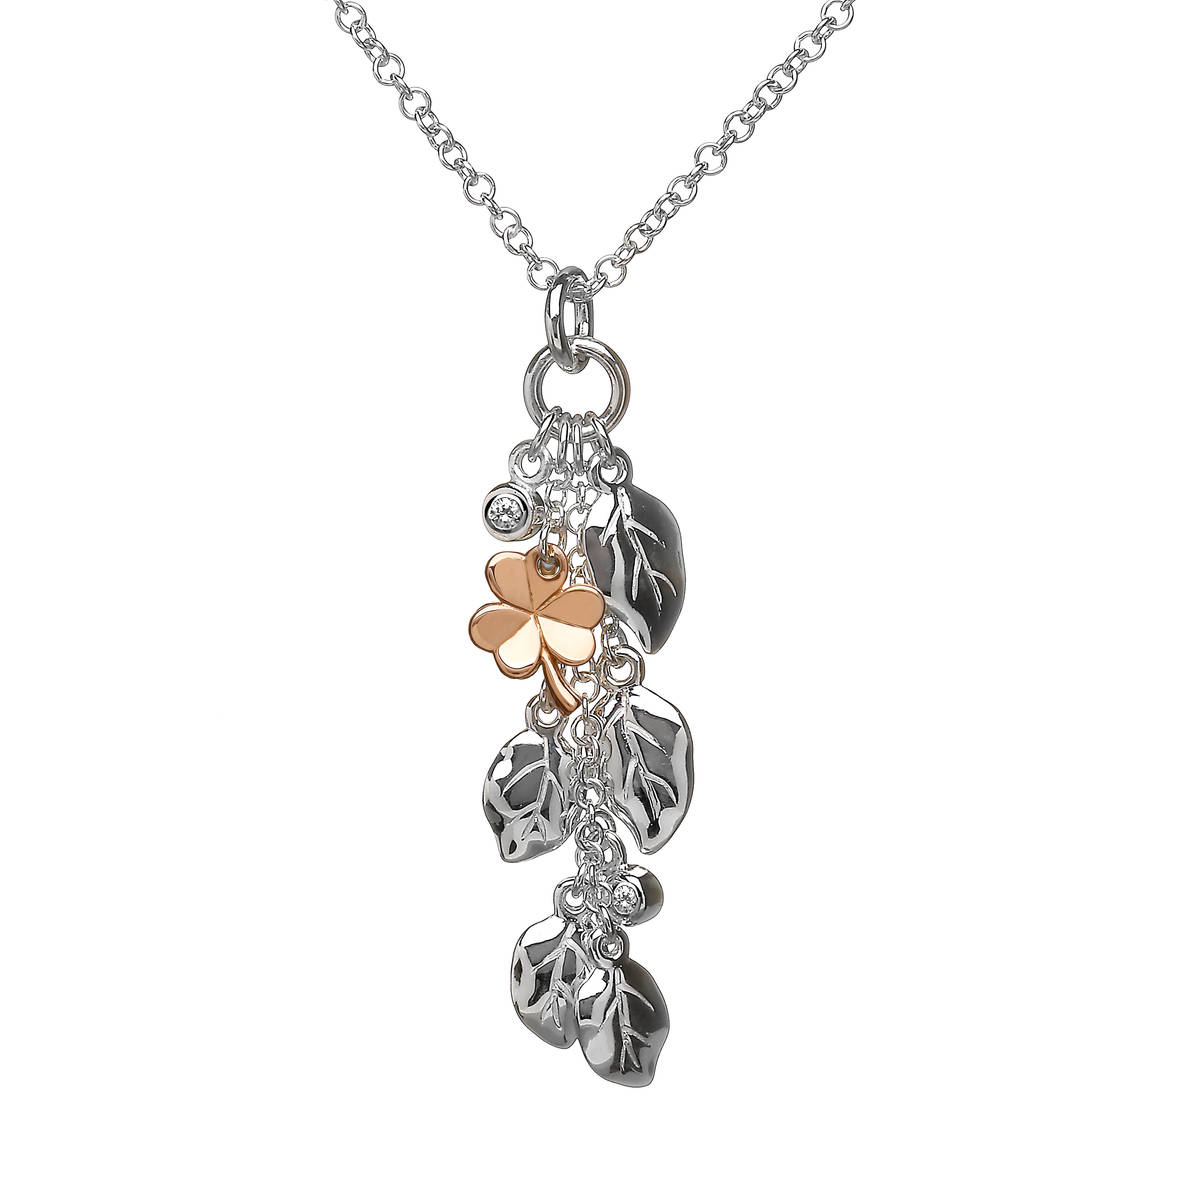 House of Lor silver drop Flora and Fauna pendant with rose gold Shamrock made from rare Irish gold